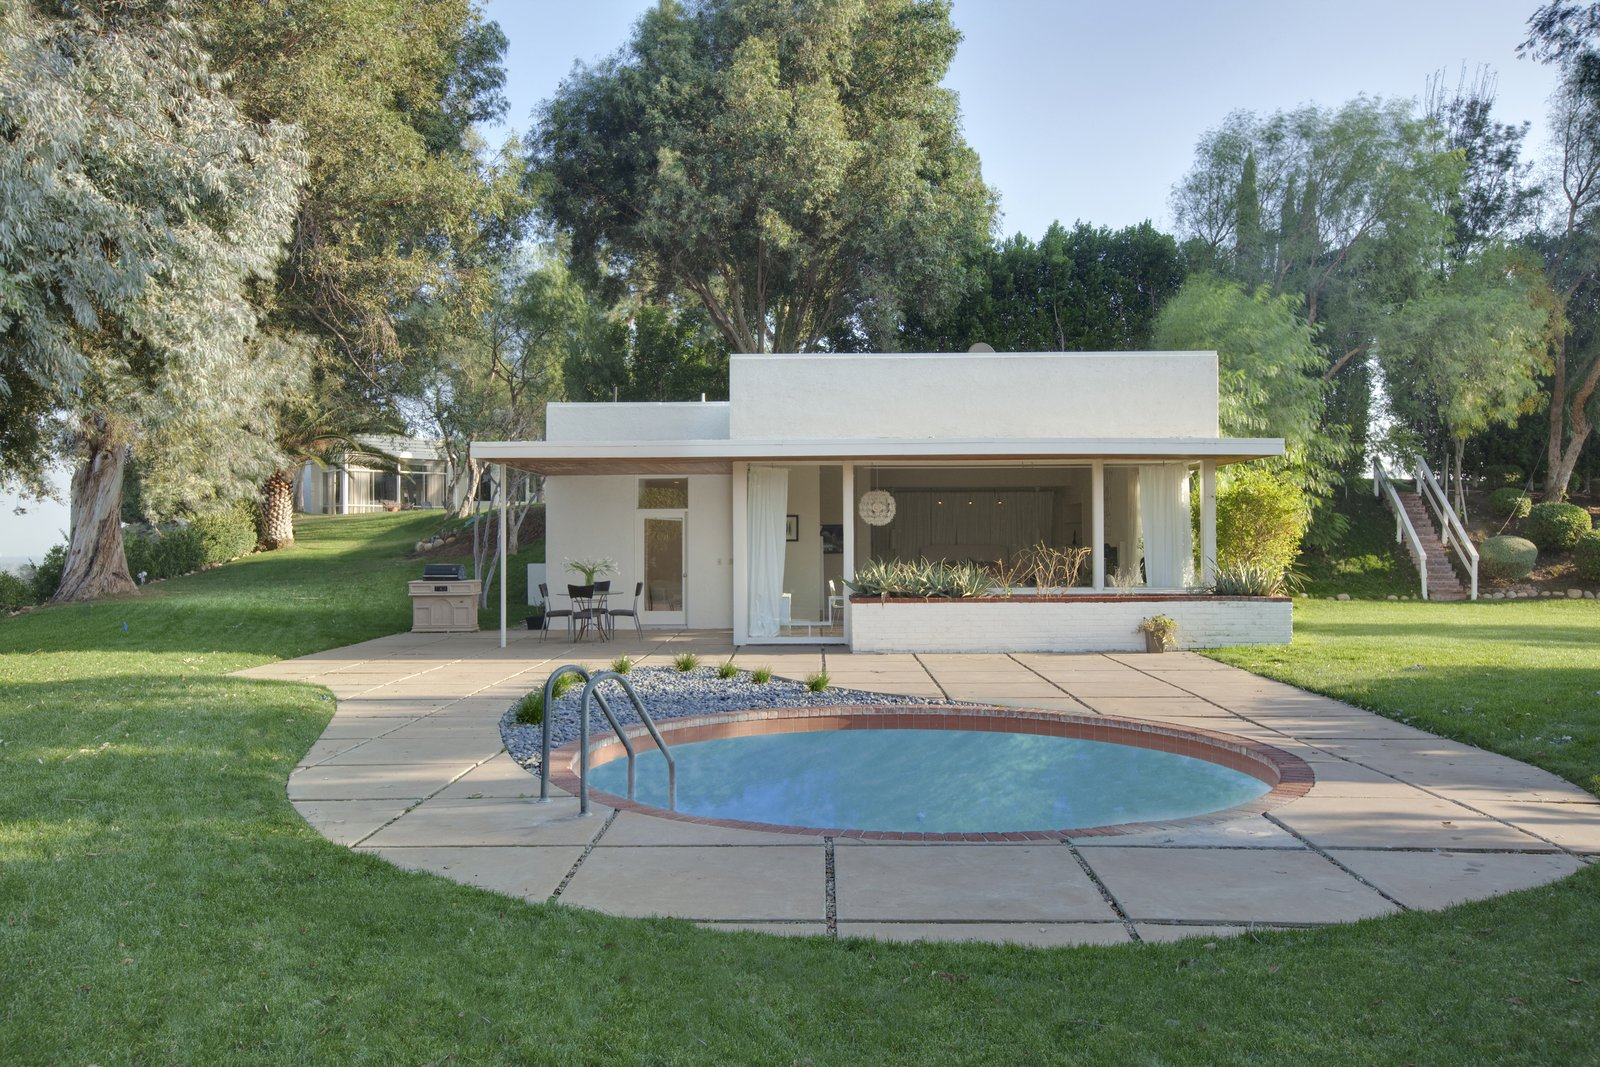 Byrdview Frank Sinatra estate guest house with pool